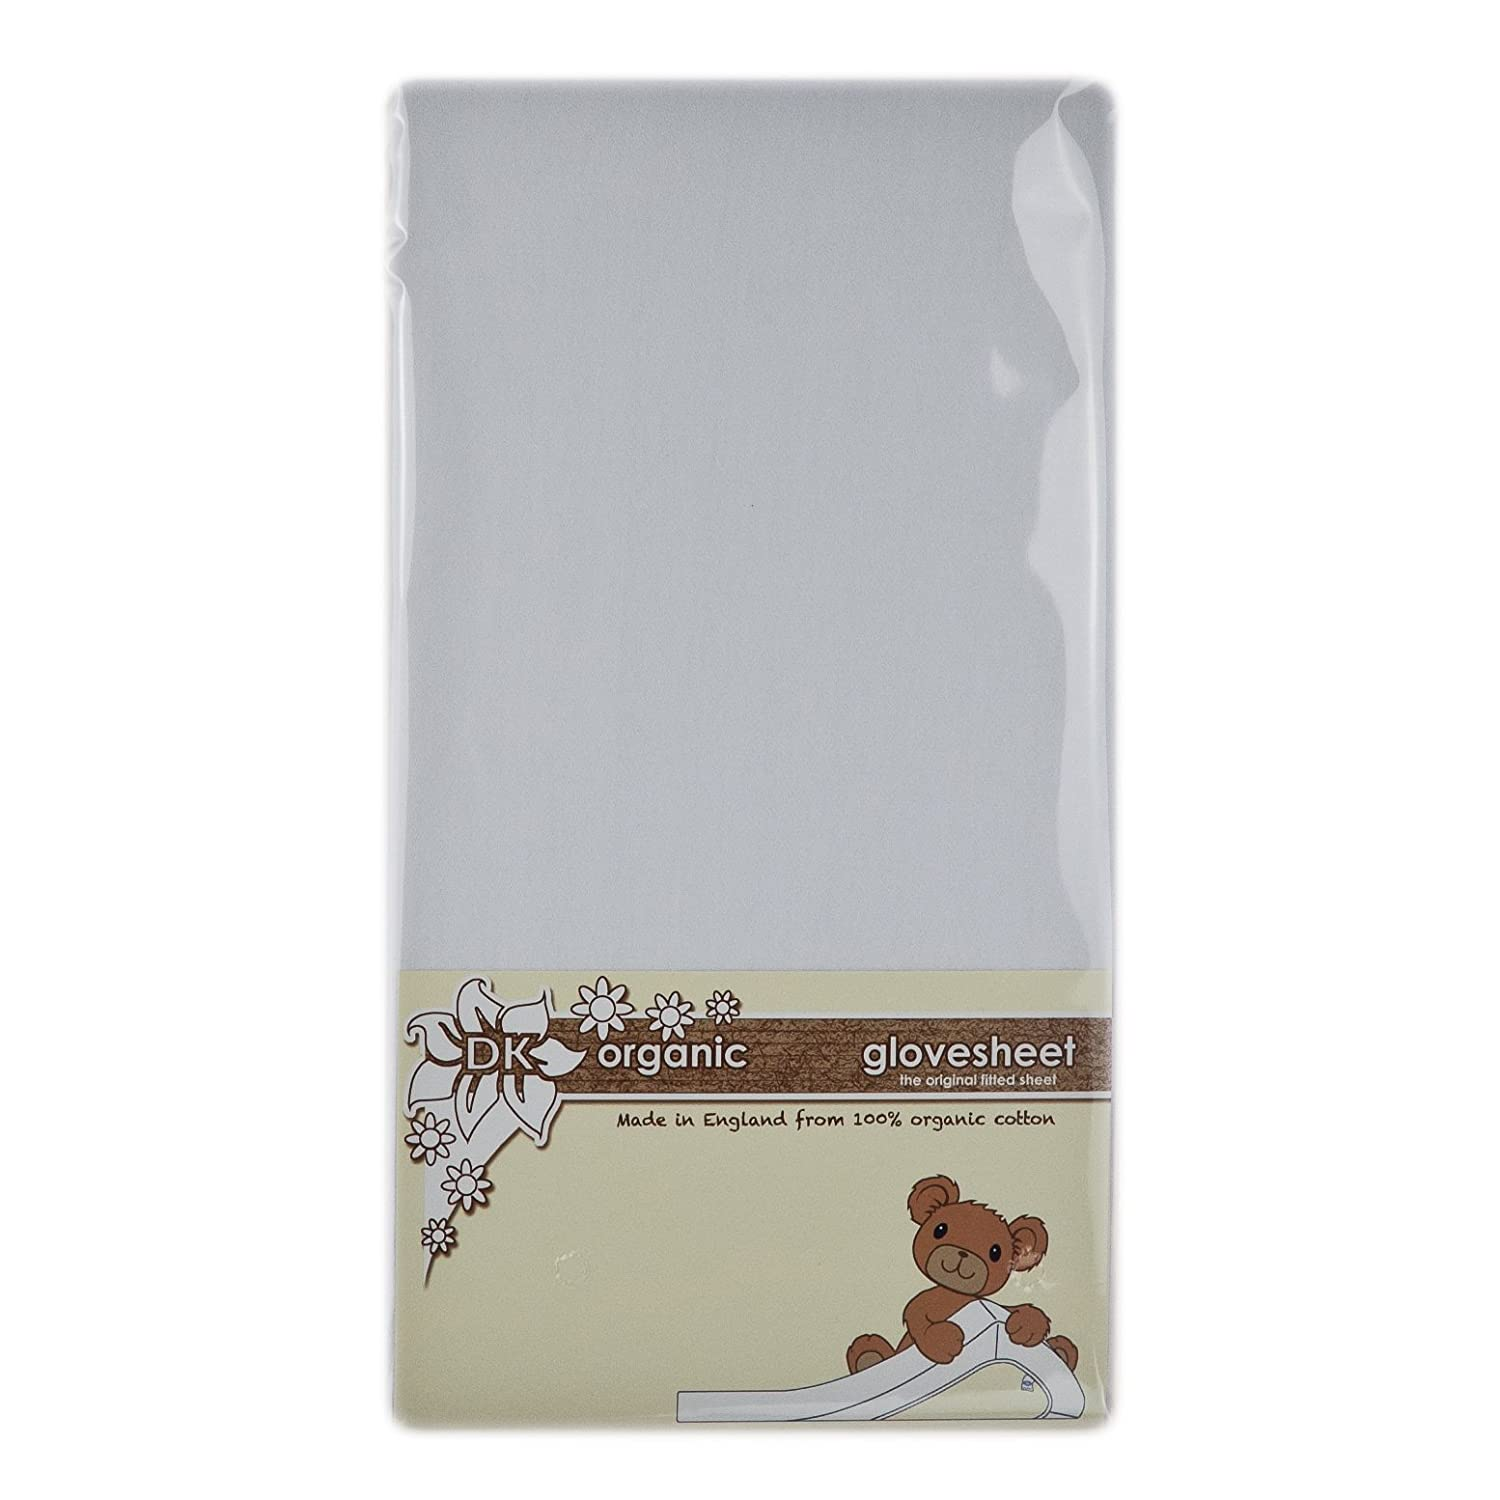 DK Glovesheets 100% Organic Cotton Fitted Cotbed Sheet (White, approx. 70x140cm) CB Org